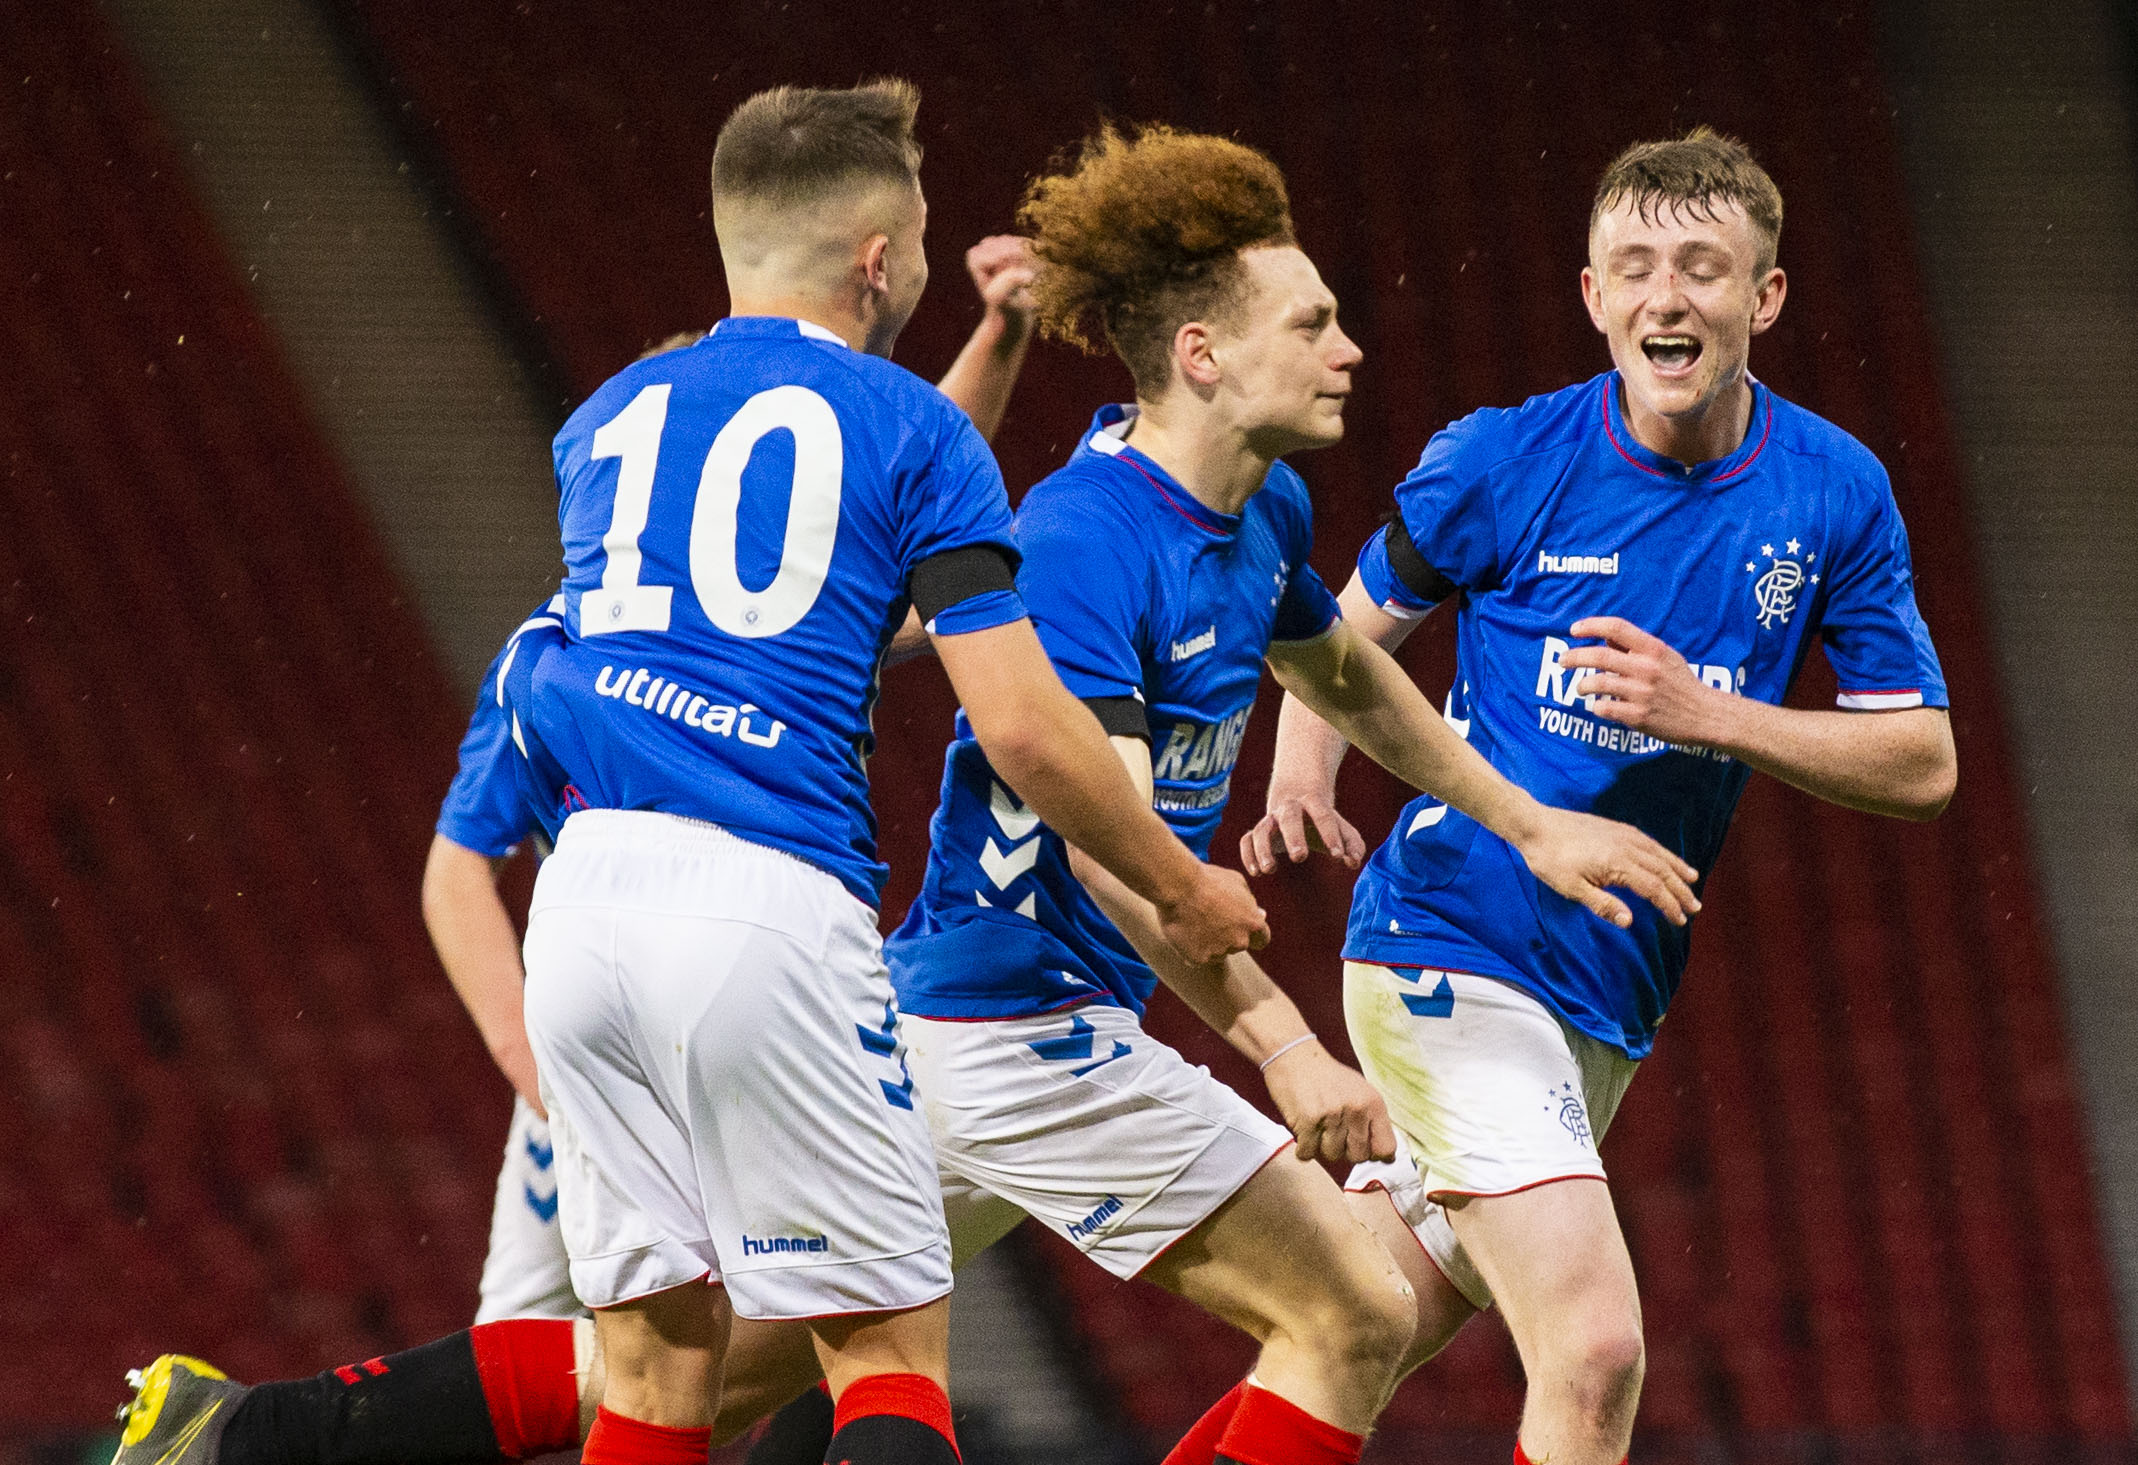 Rangers youngsters come out on top in seven-goal thriller against Ajax